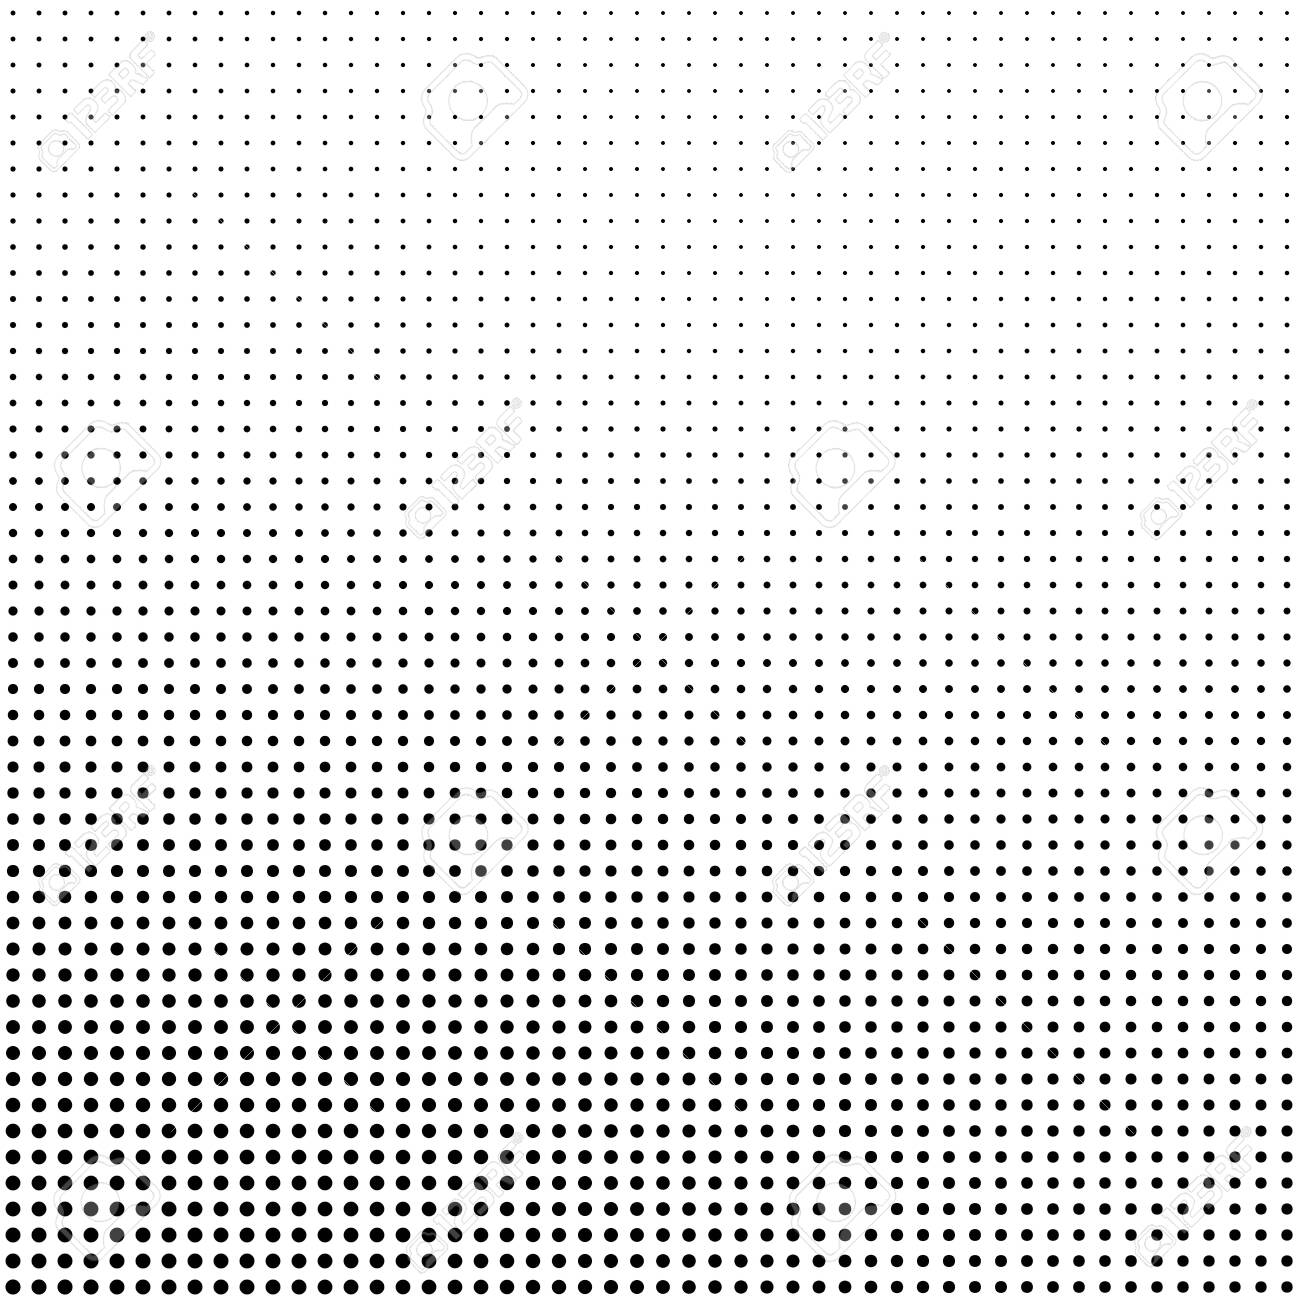 Abstract halftone background in black and white. Dotted vector pattern. - 138144412